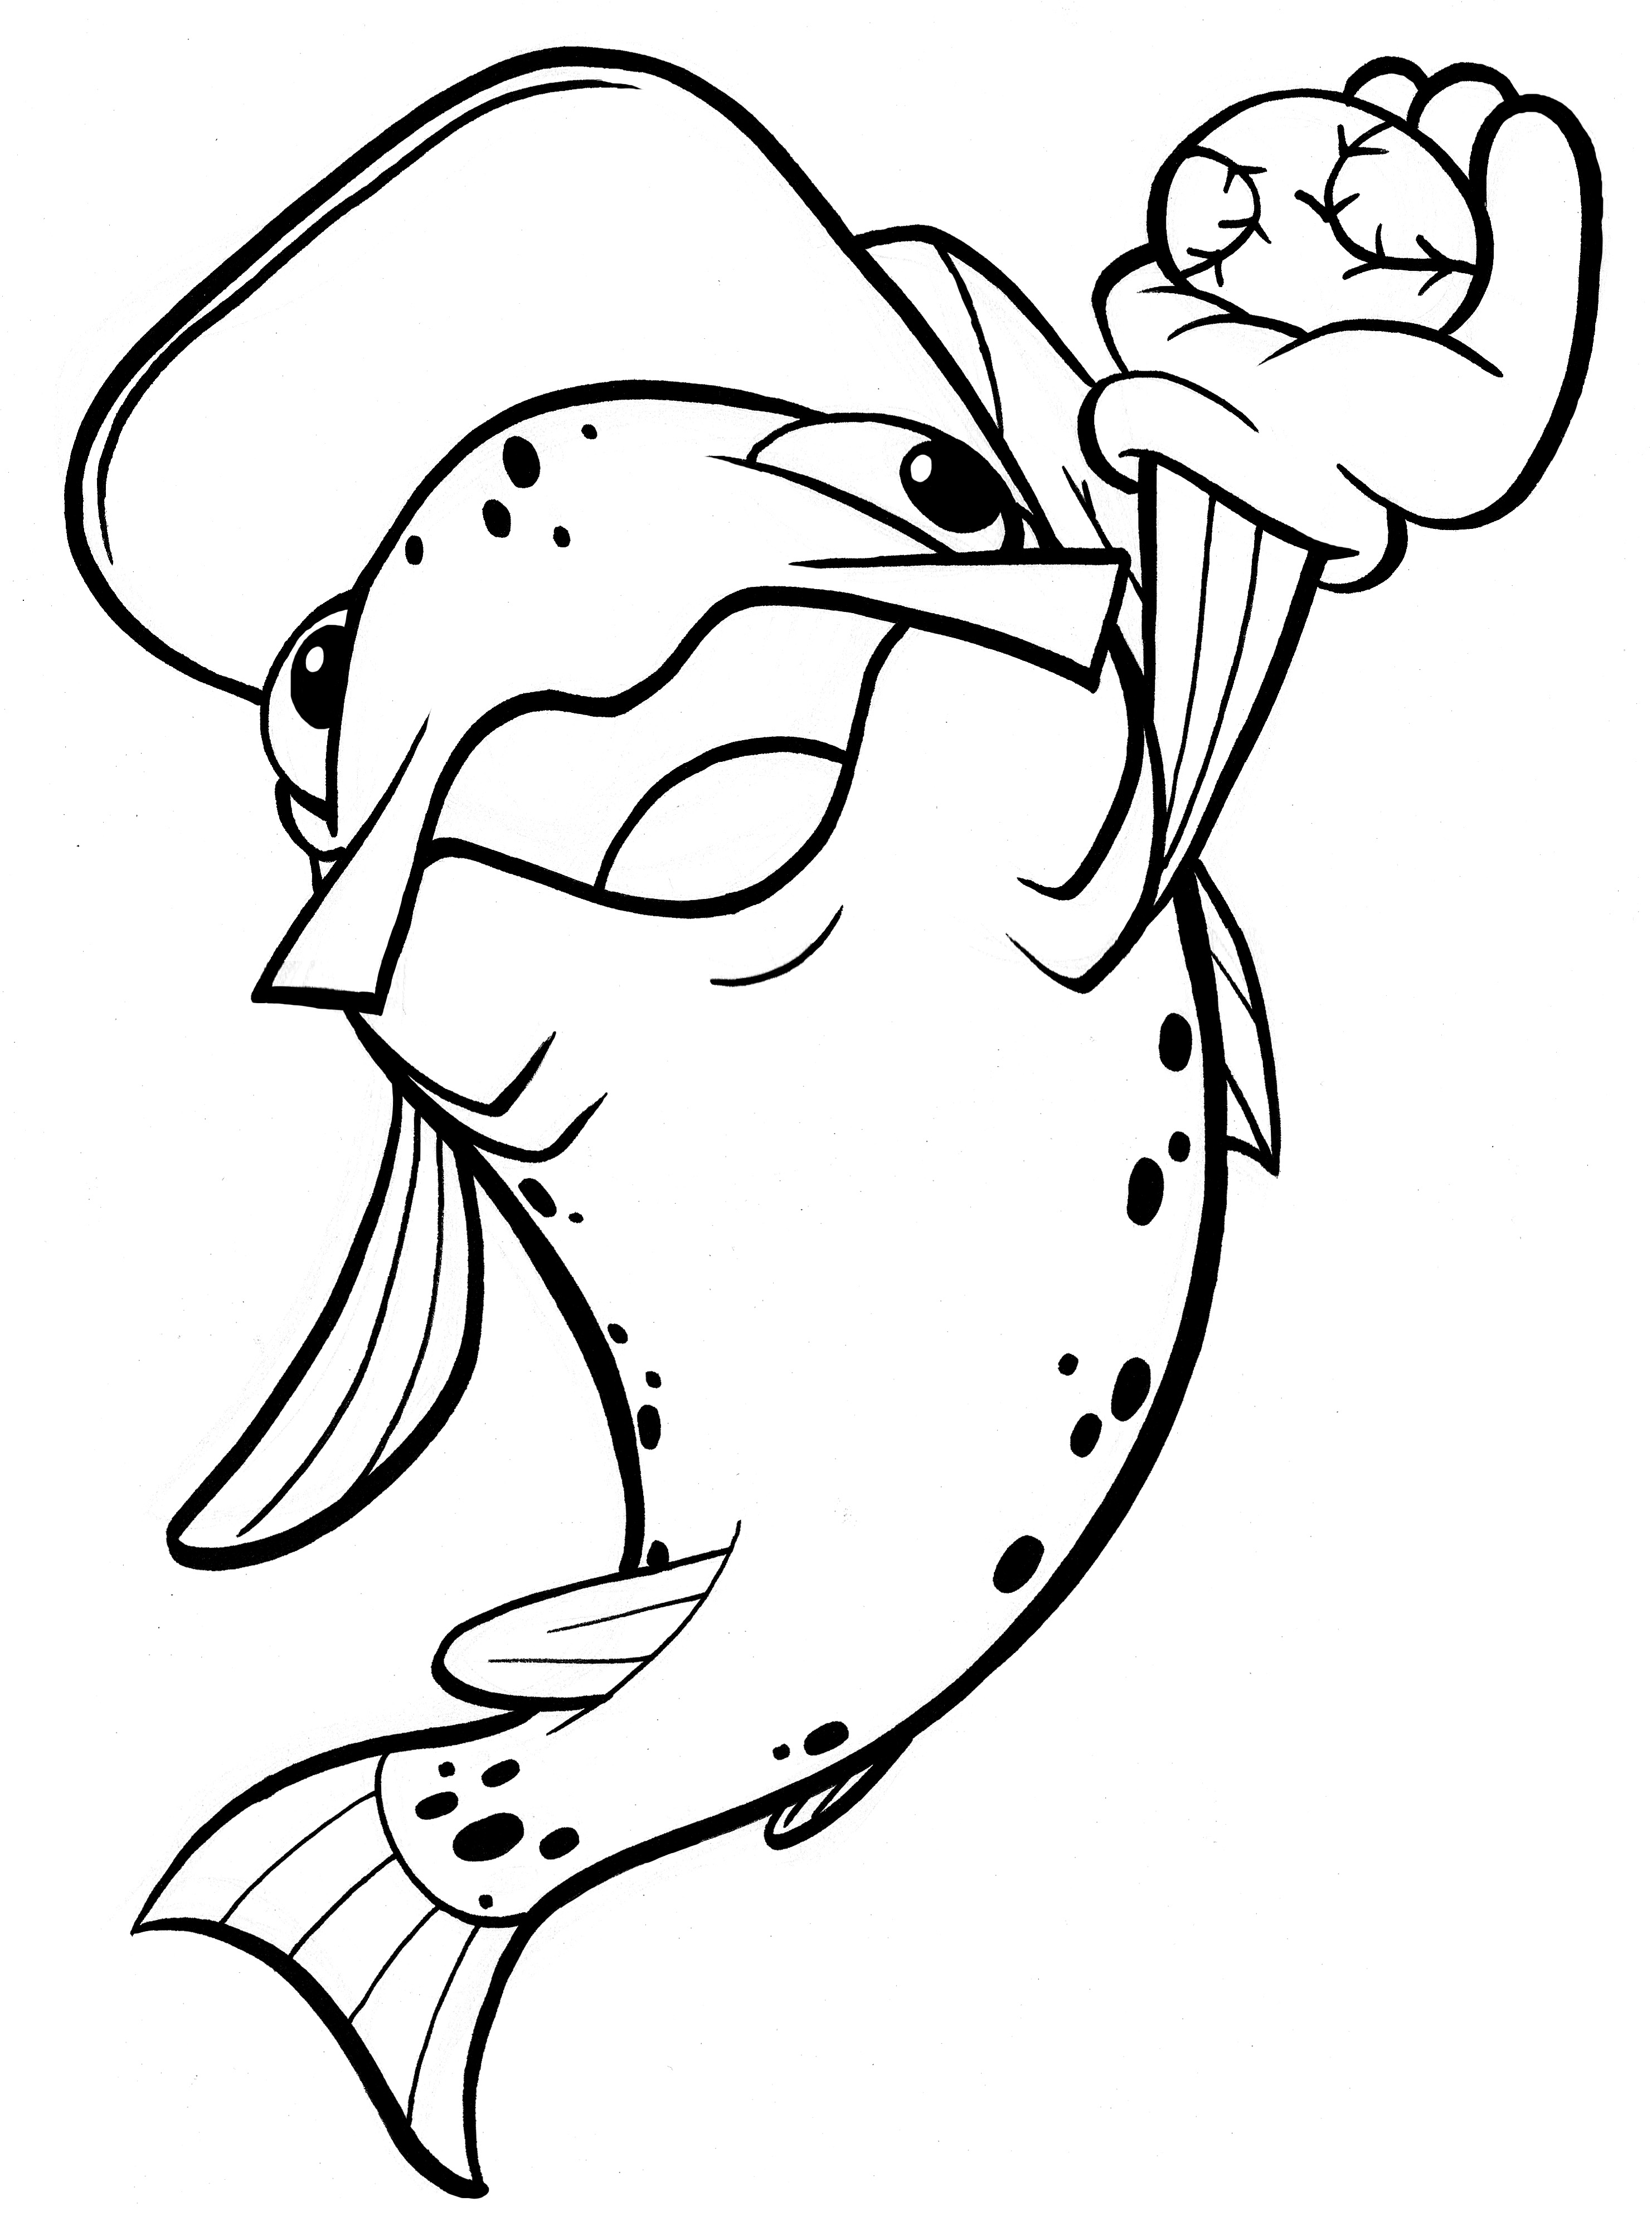 catching viper fish coloring pages - photo#24